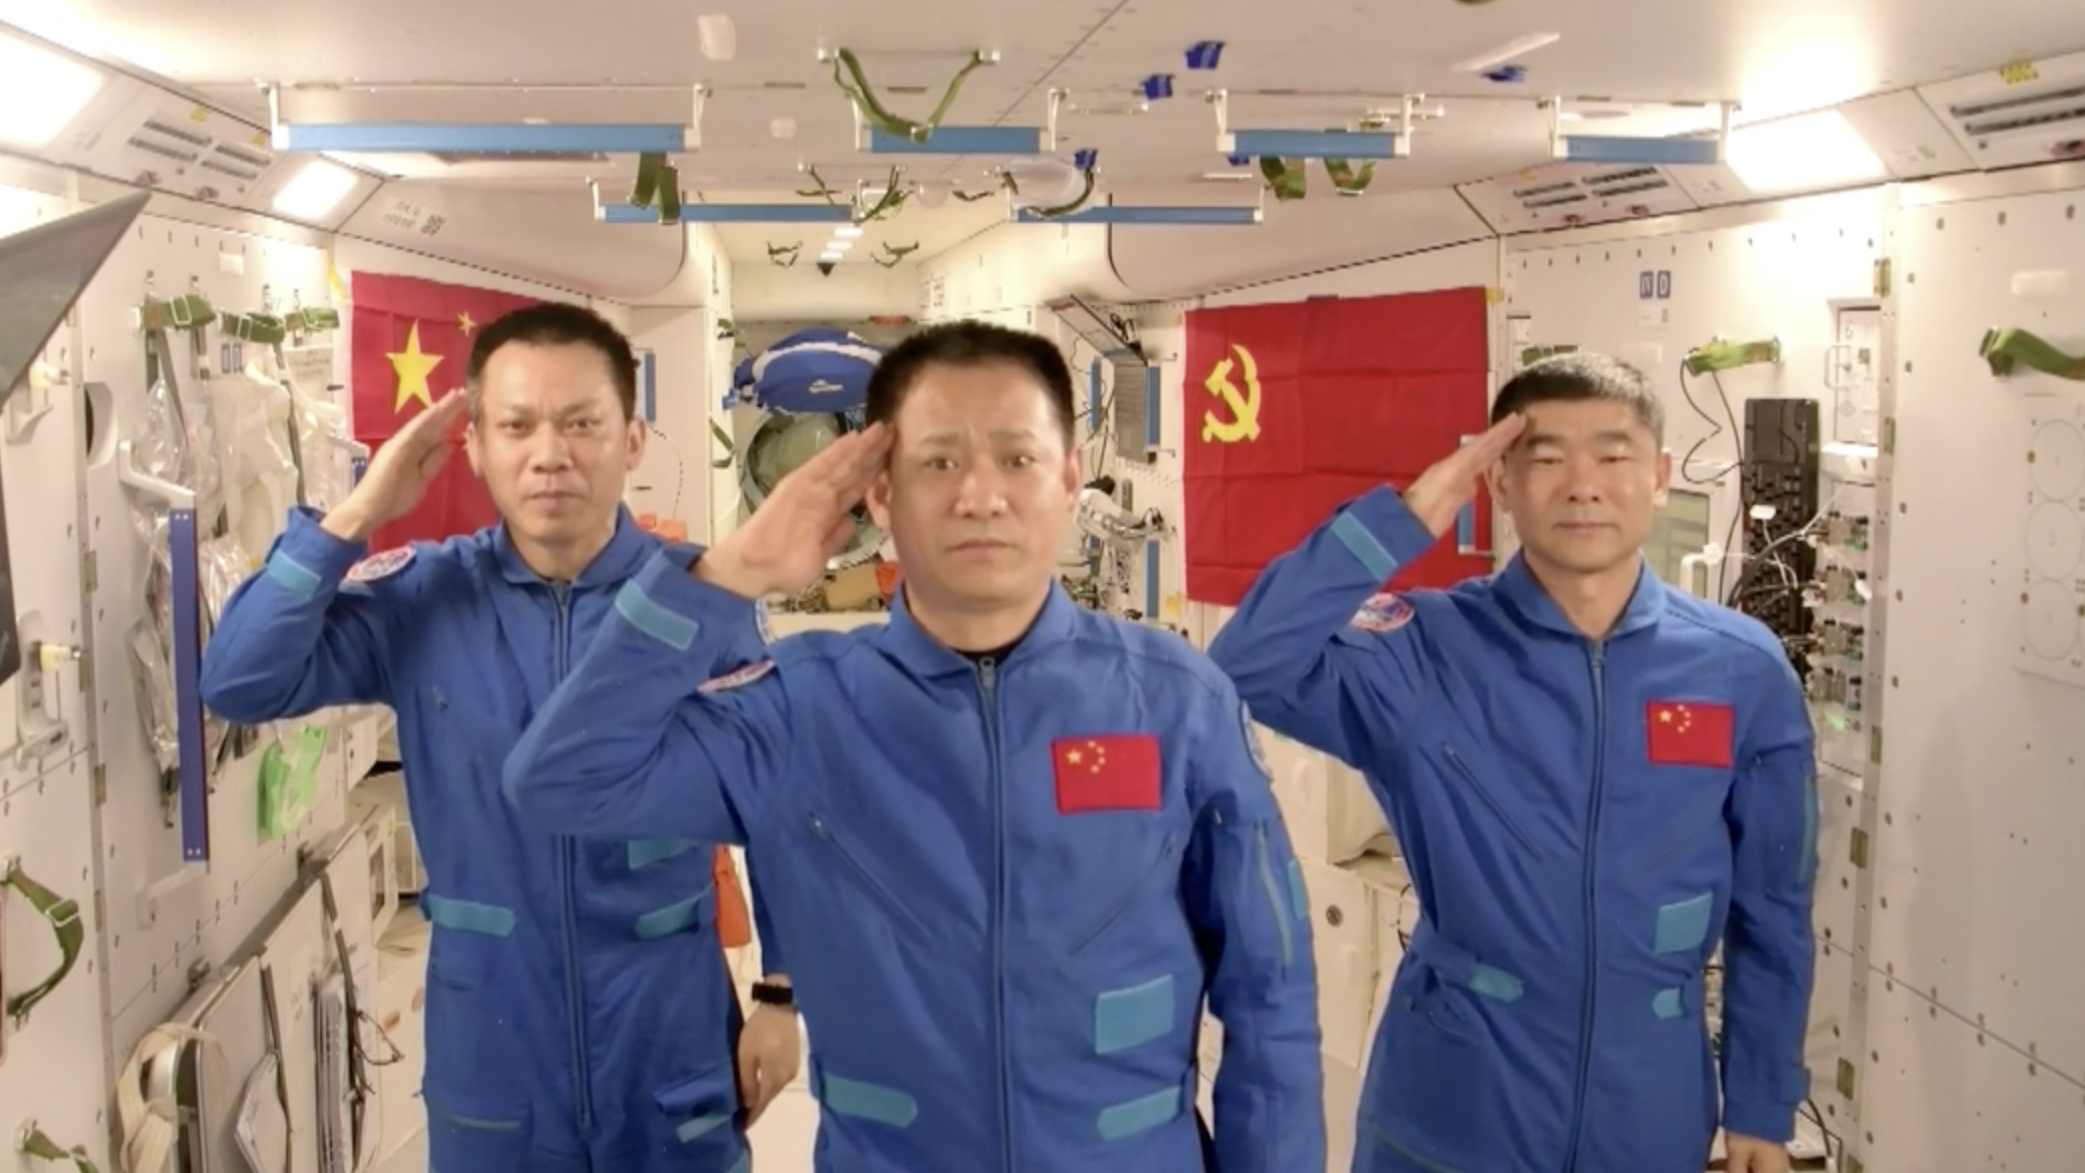 - 8c61af23242e4b6c9fc8692cea2779f2 - A month in China Space Station: What's been done so far?